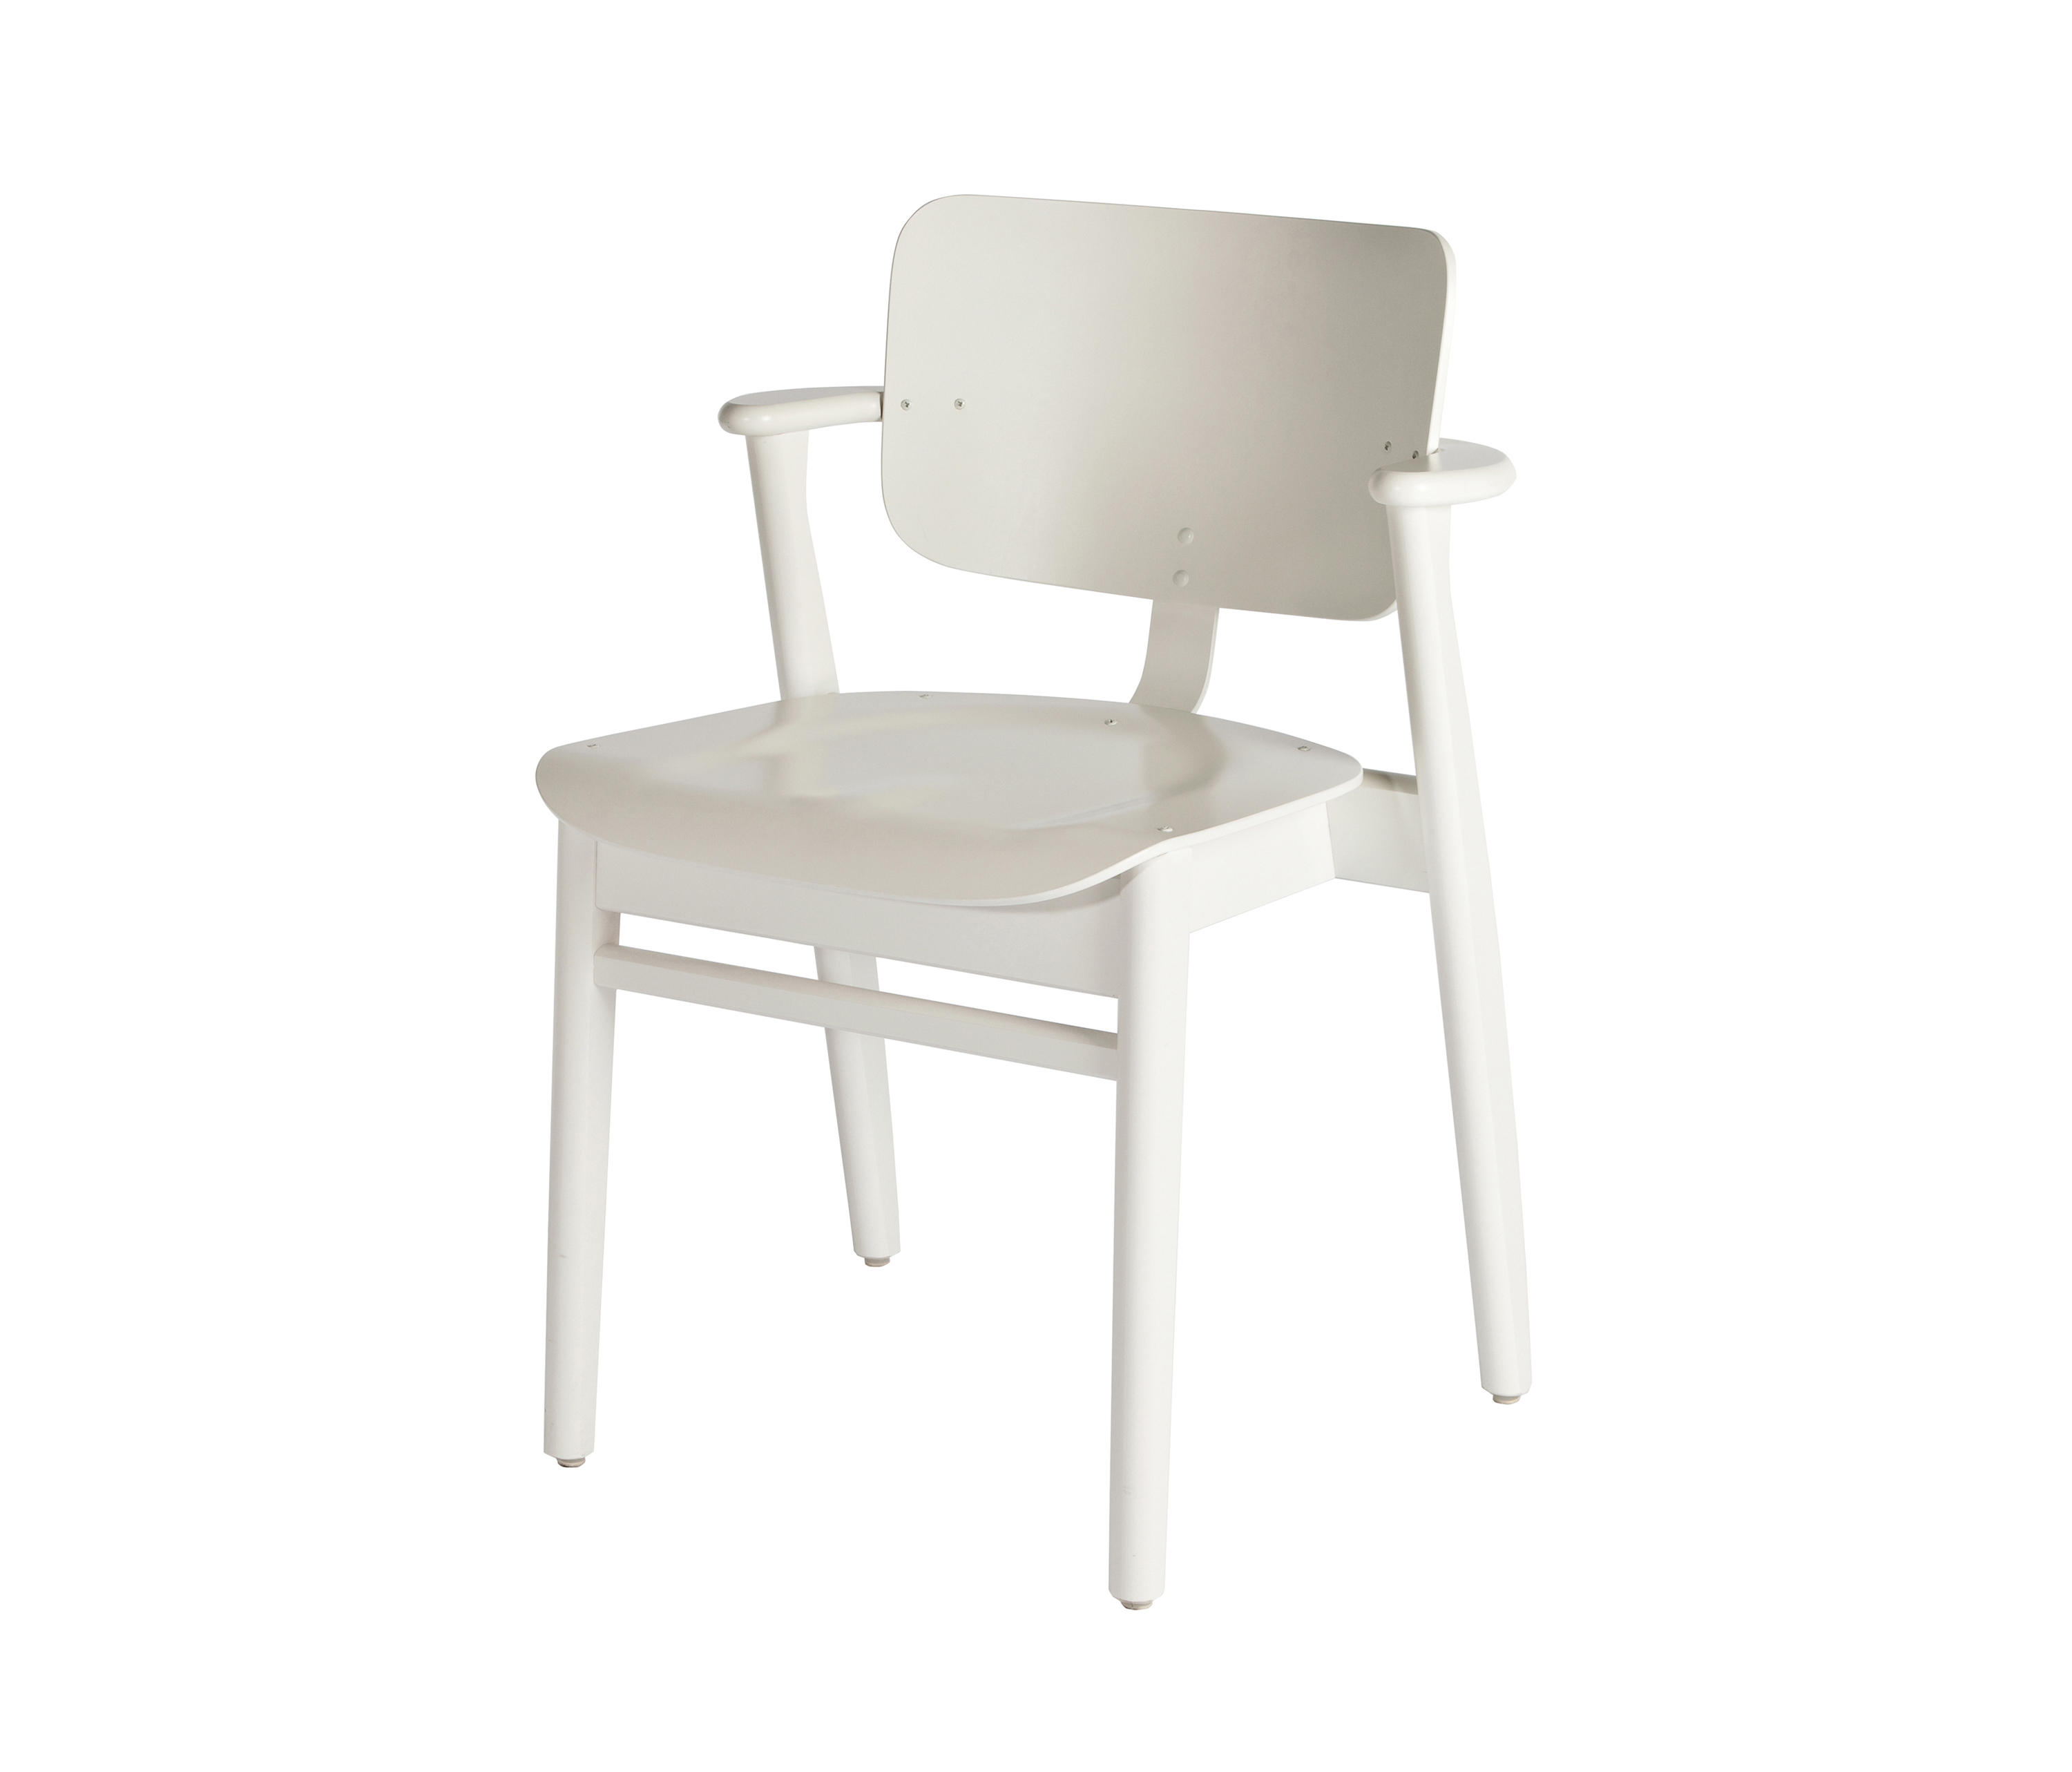 domus chair chairs from artek architonic